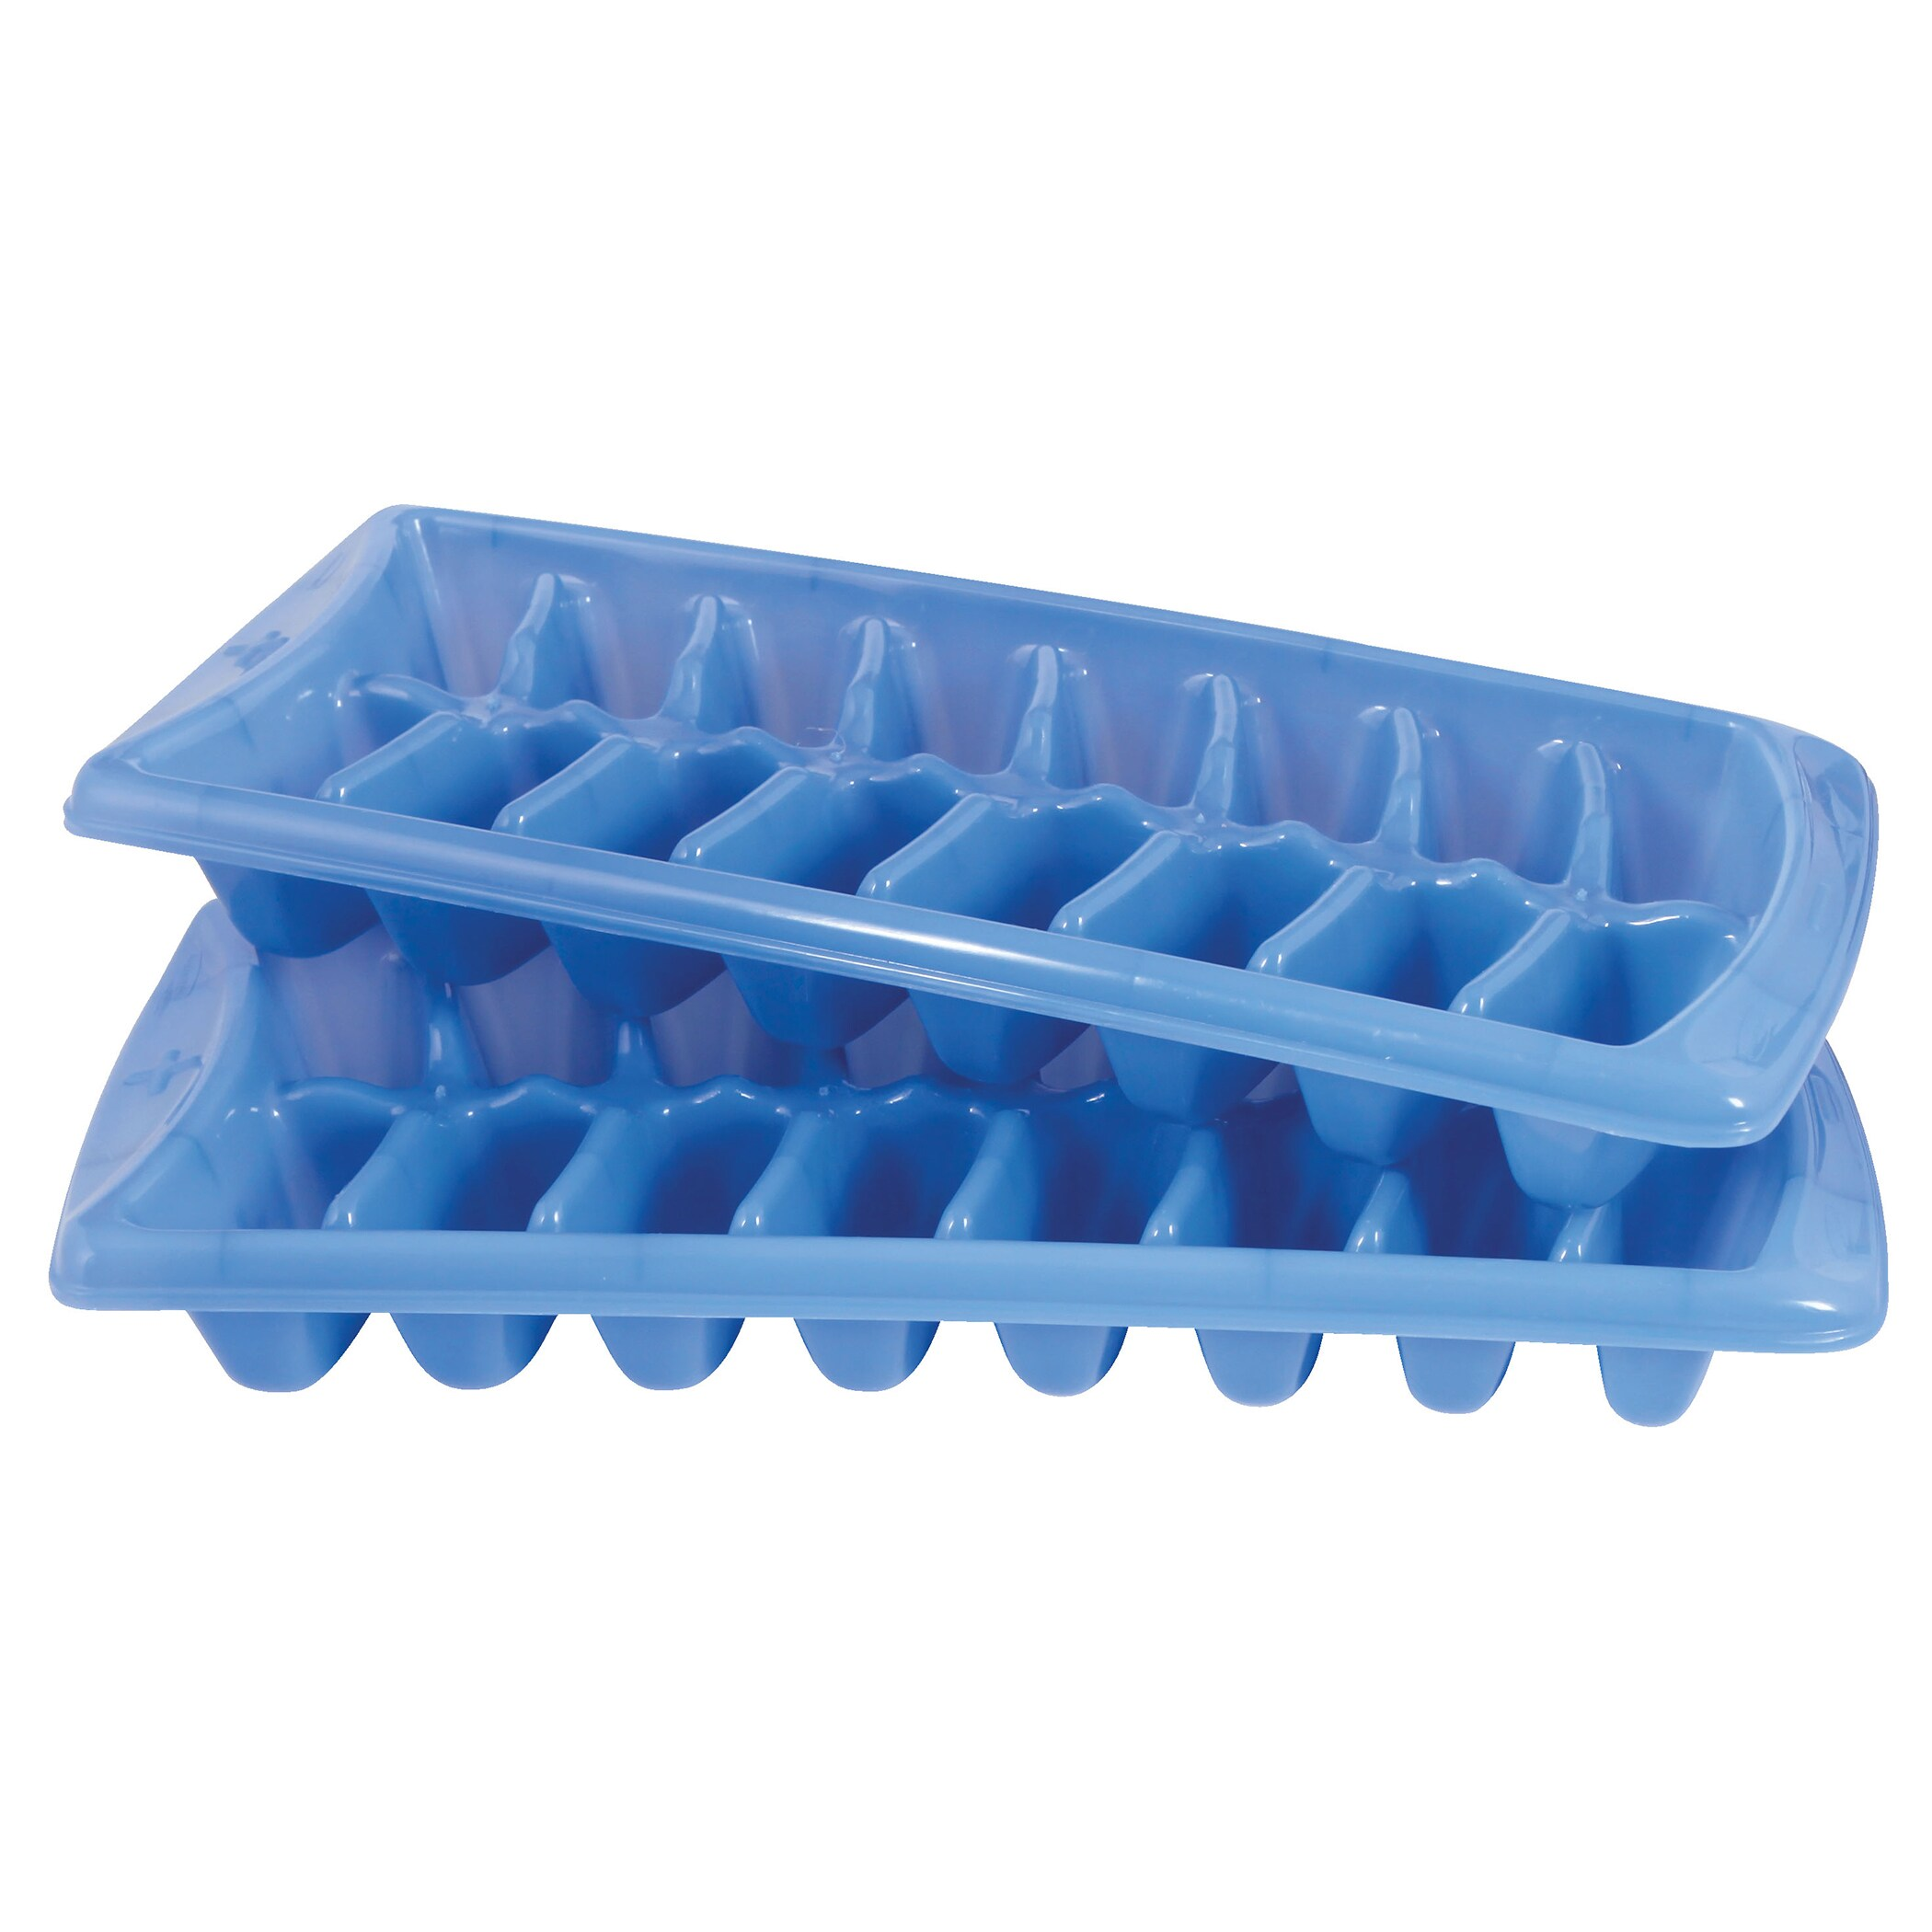 Rubbermaid 2879RDPERI Stack & Nest Ice Cube Tray (Ice Cub...